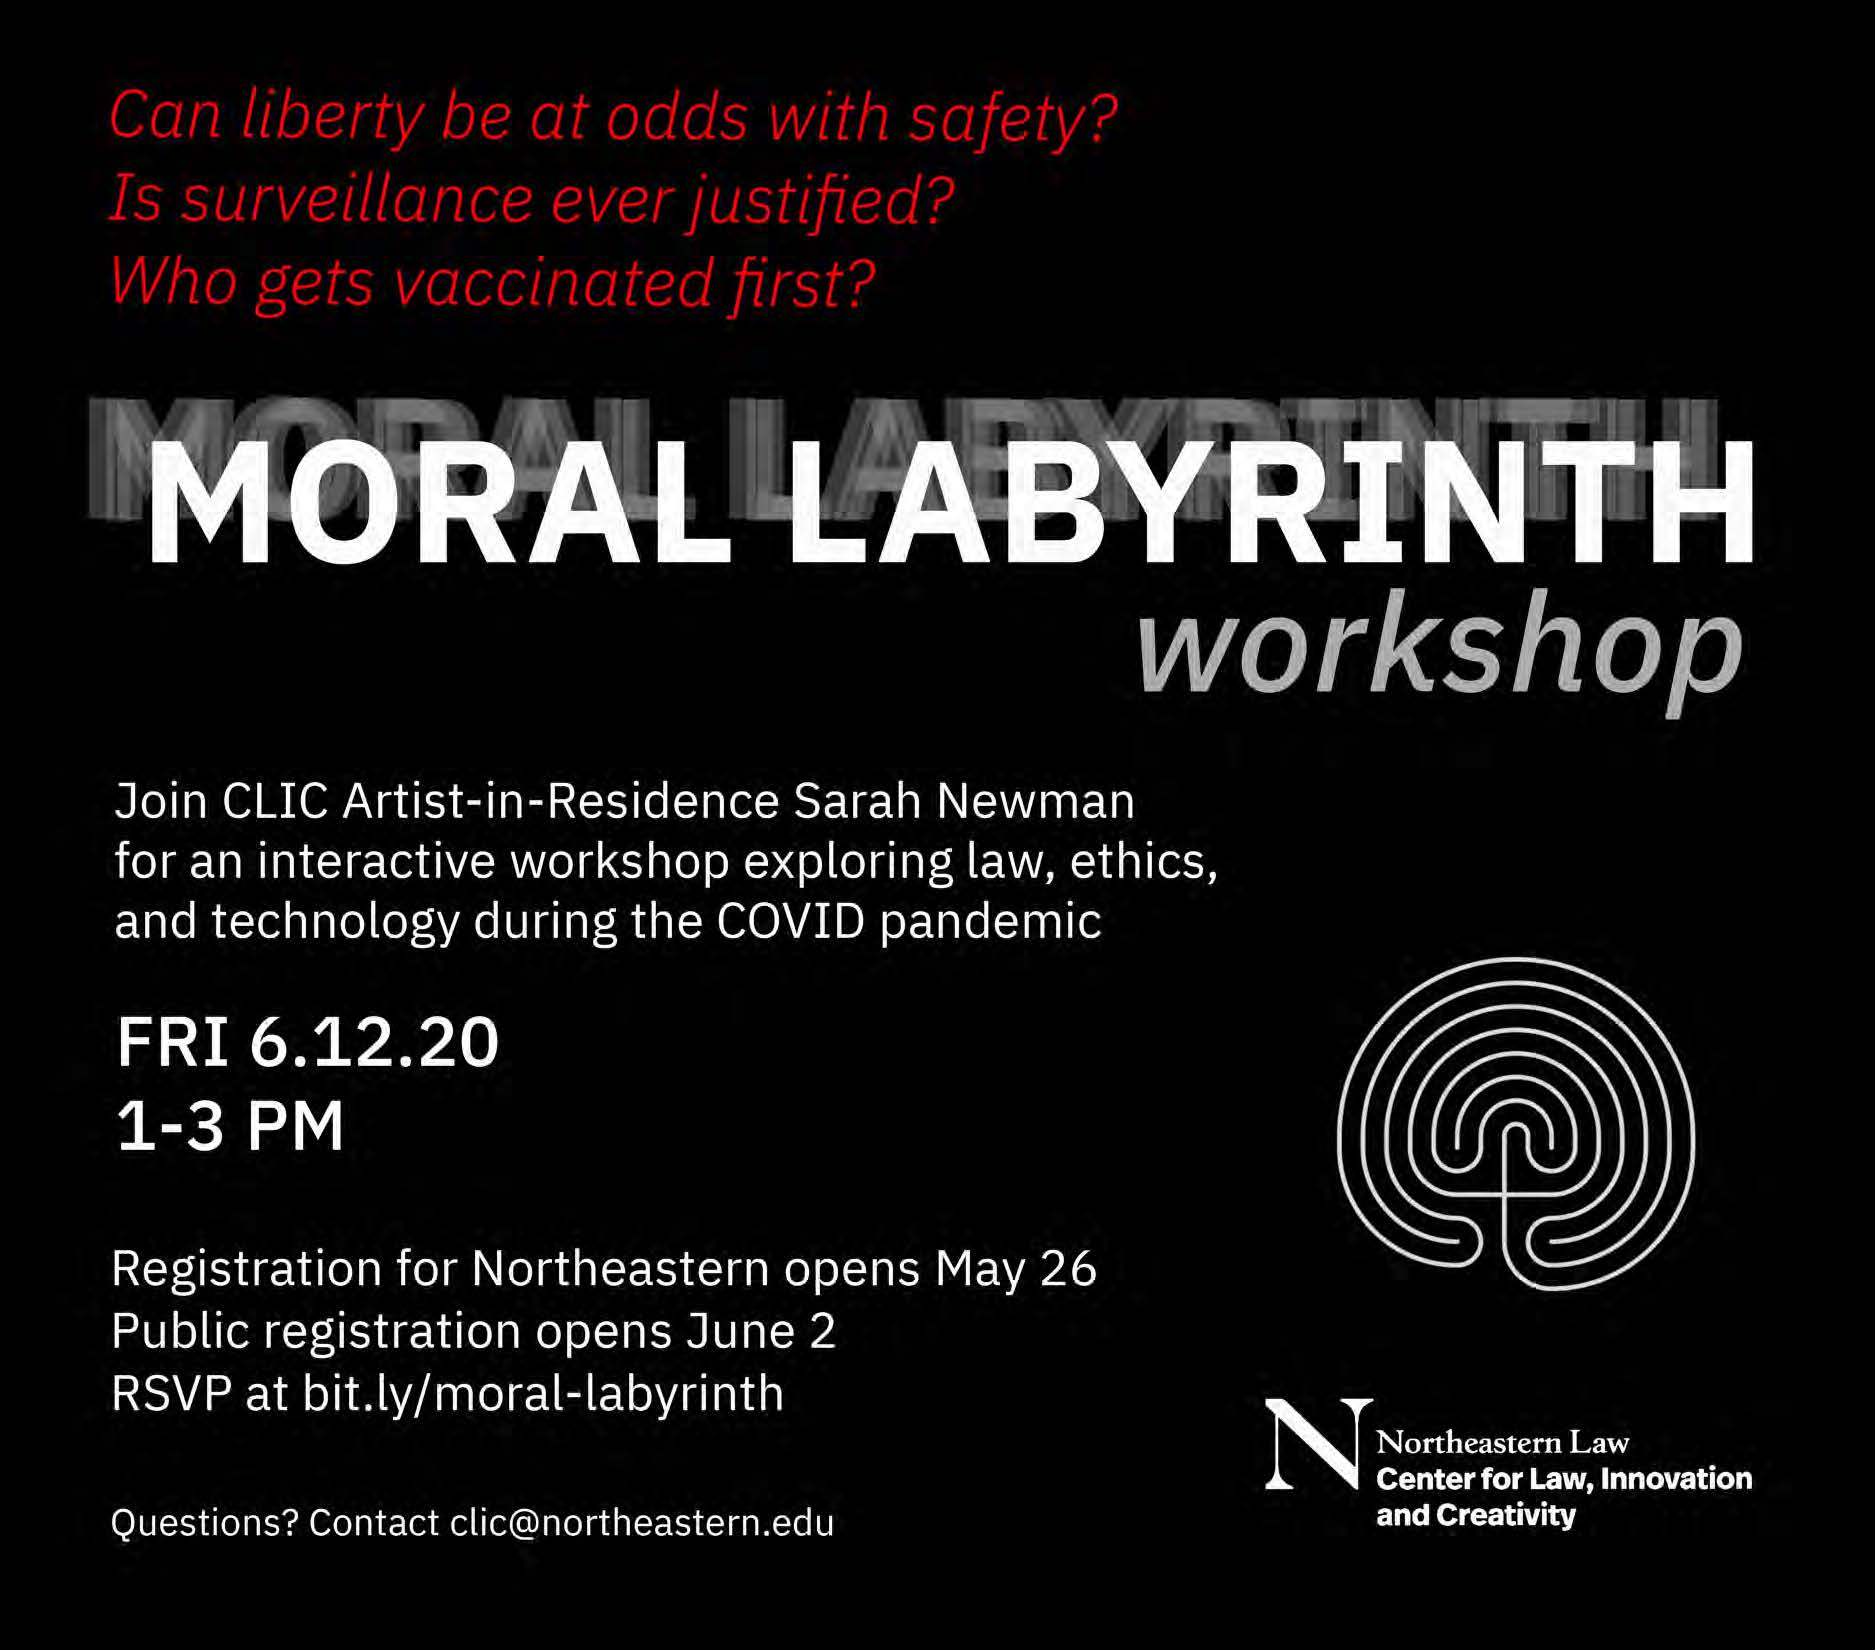 New Event: Moral Labyrinth Workshop with CLIC's Artist-in-Residence, Sarah Newman